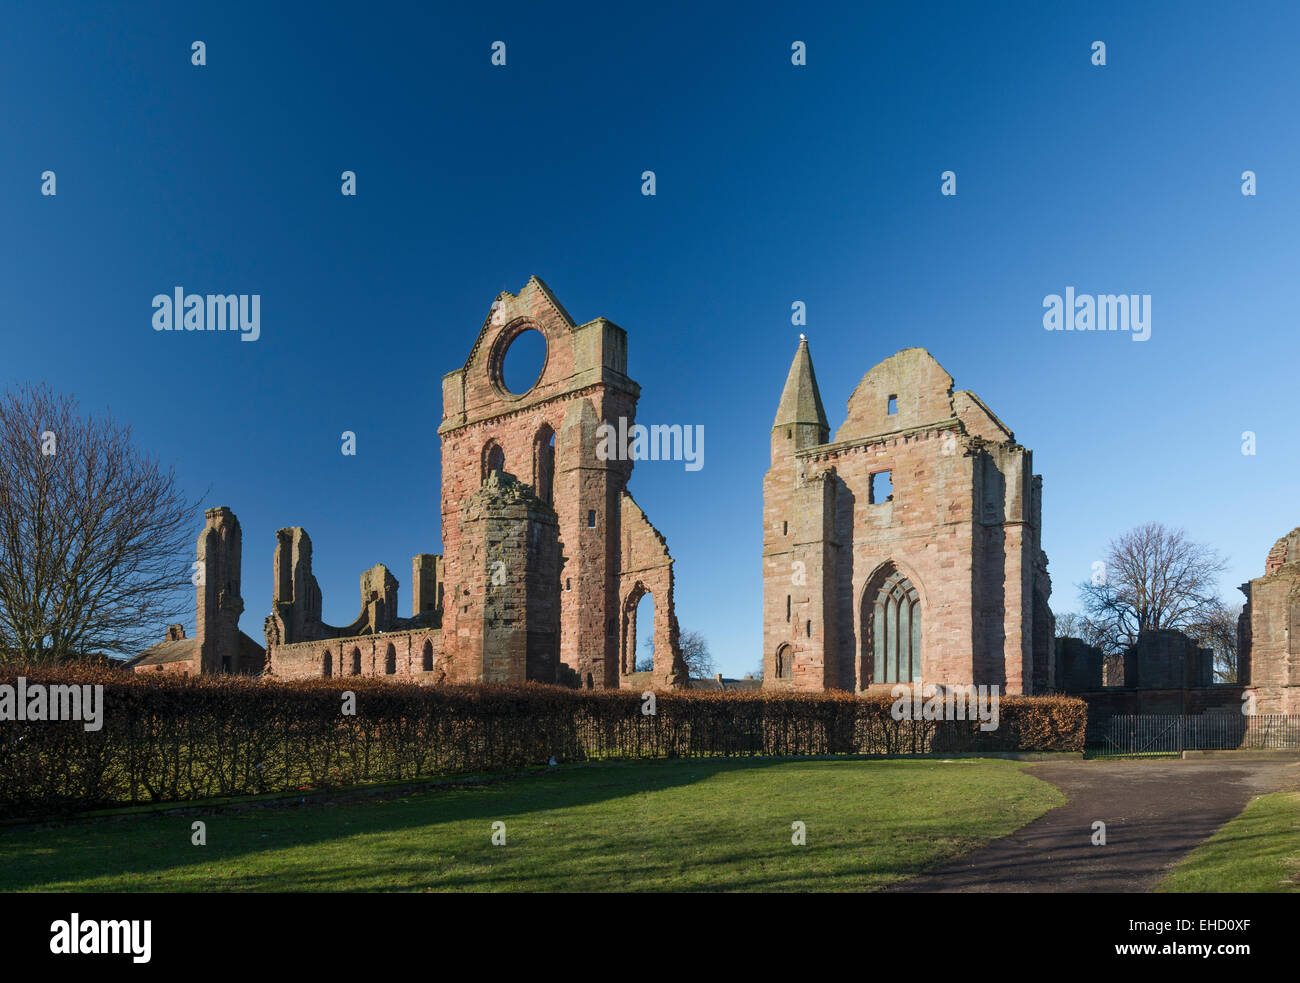 arbroath abbey in cold clear crisp bright light - Stock Image